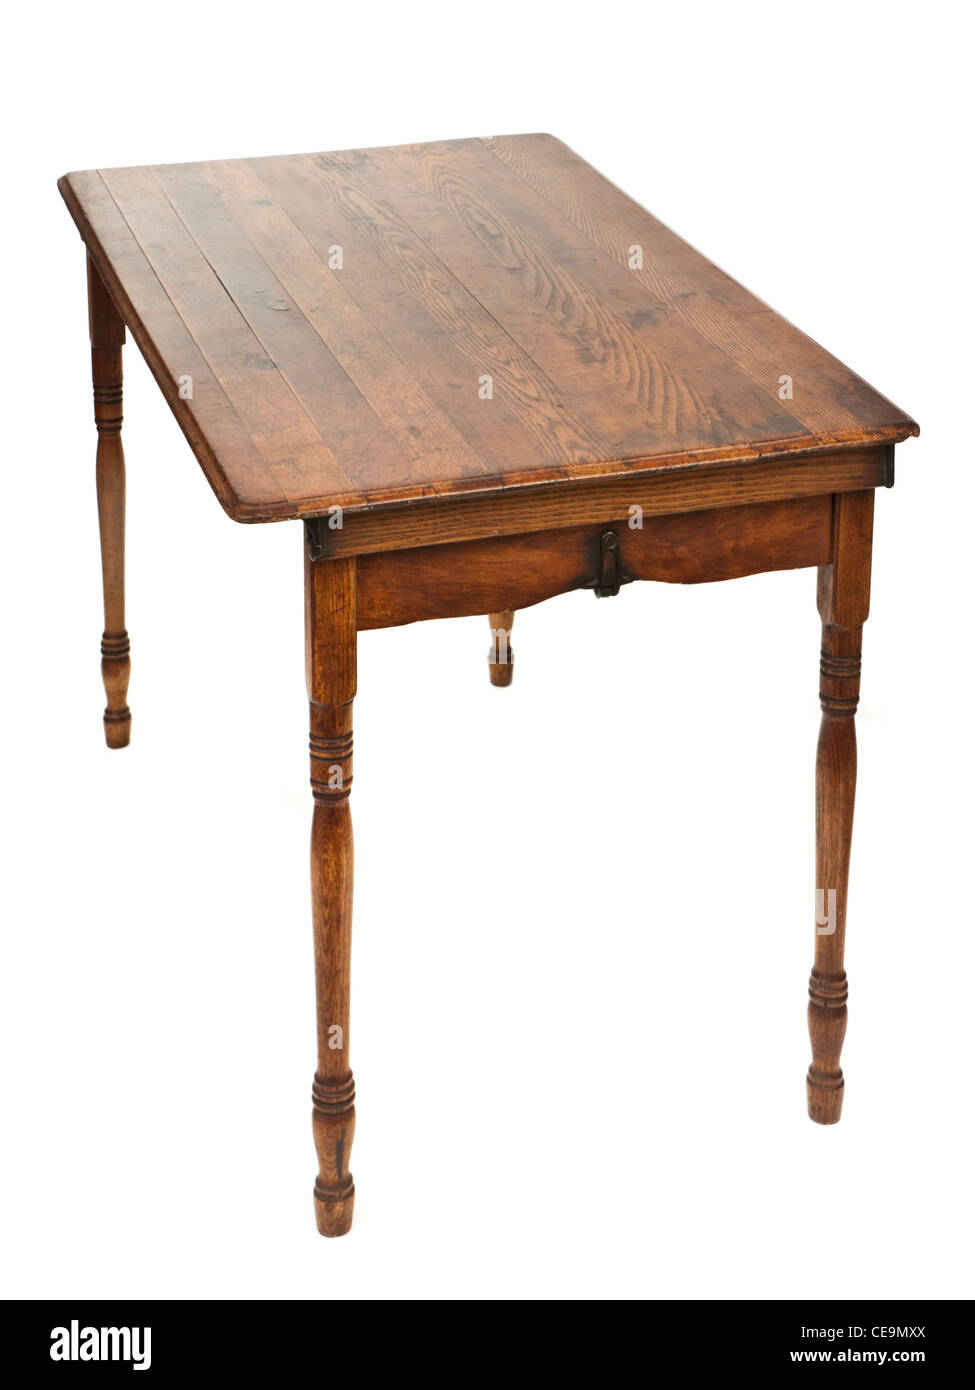 Antique Victorian wooden folding table Stock Photo